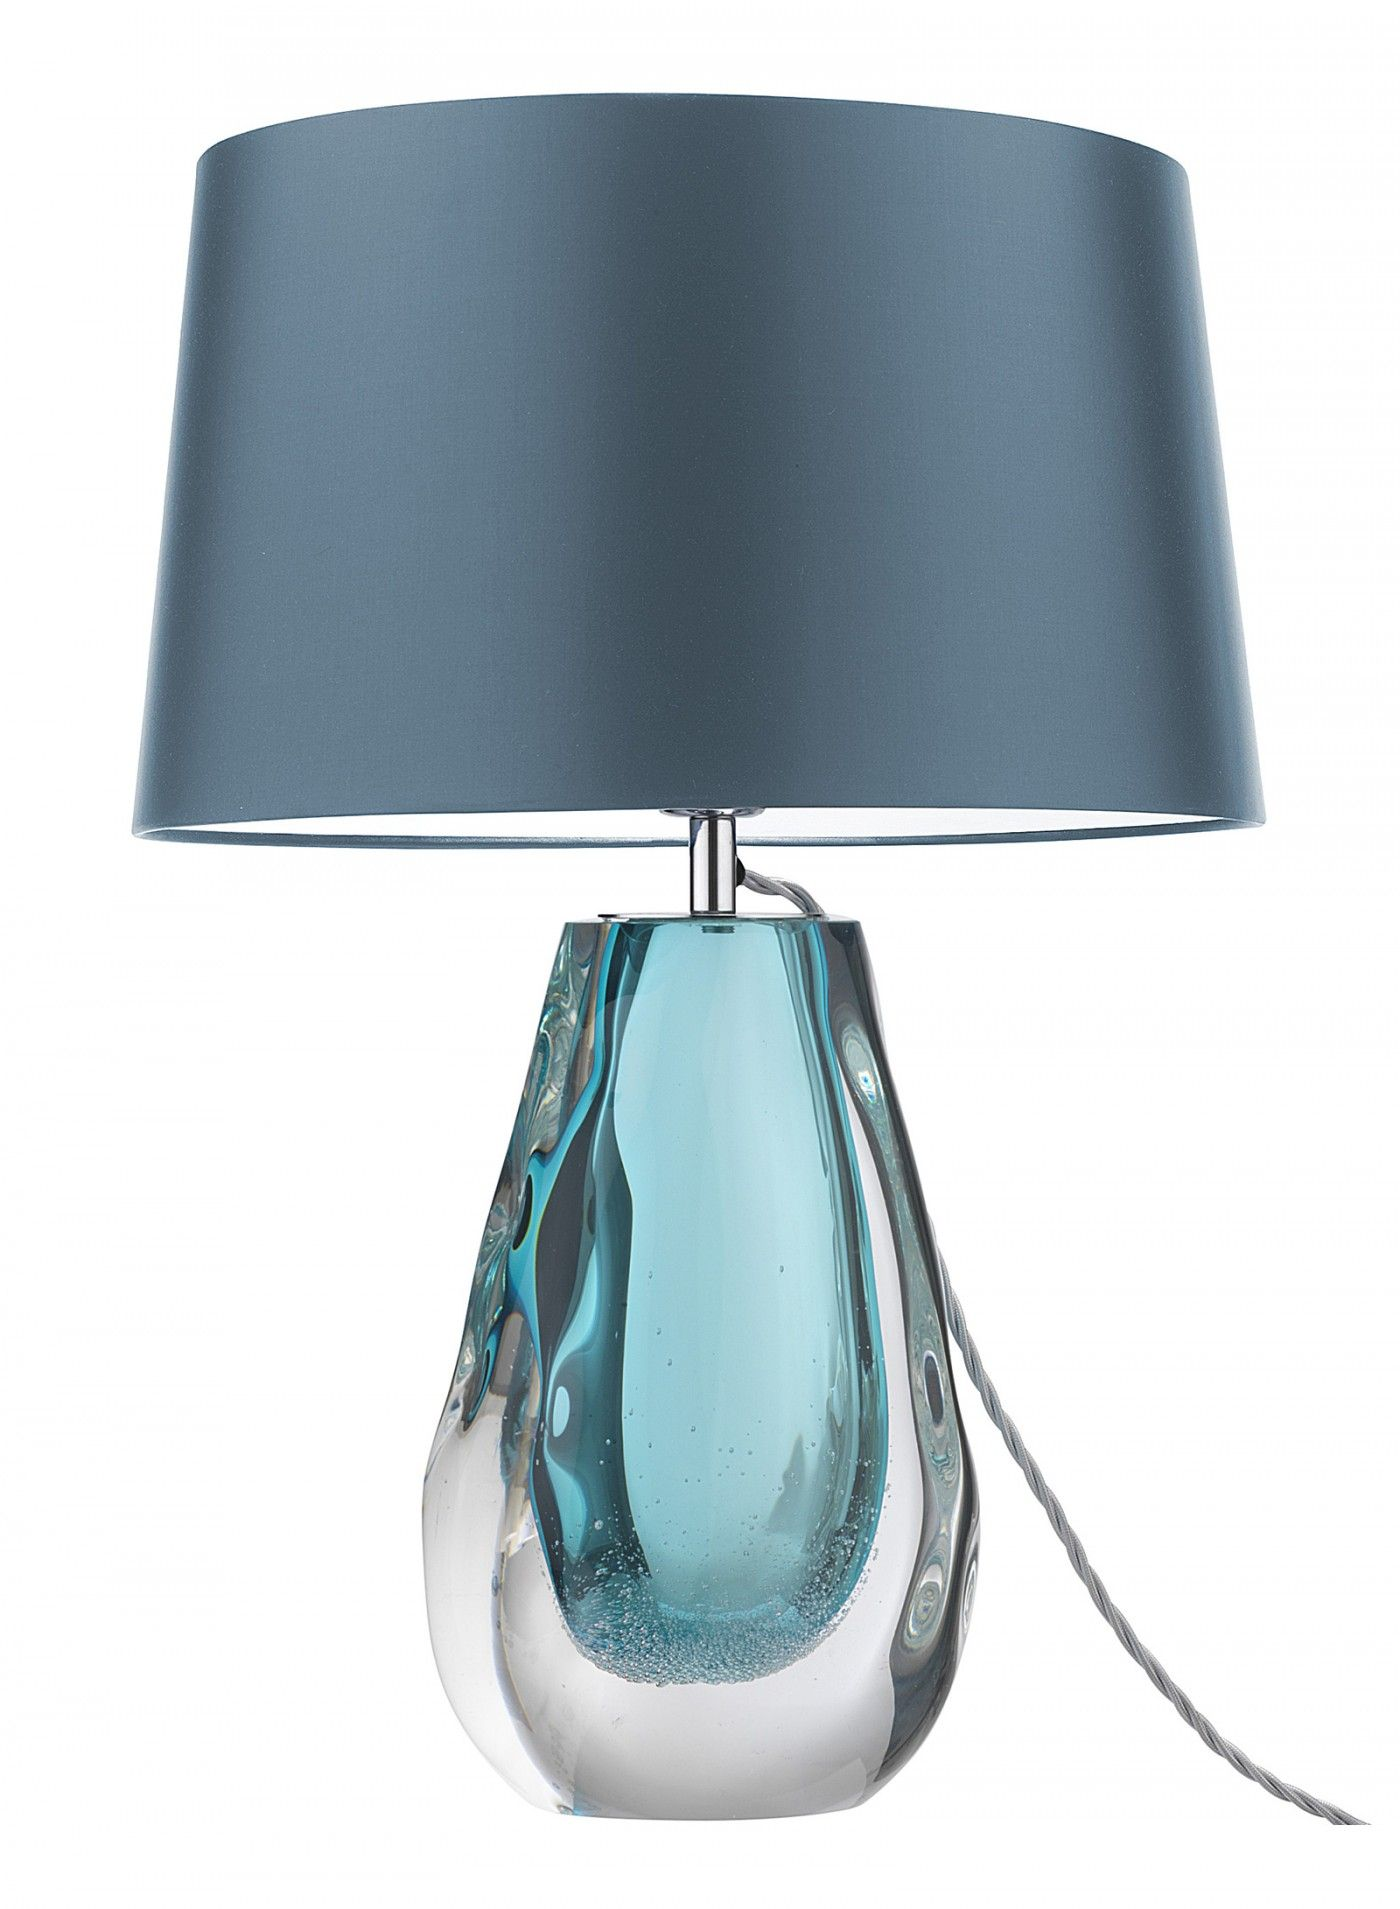 Small table lamps for bedroom - Living Room Table Lamps Blue Table Lamp Blue Lamps Living Room Lighting Blue Tables Bedroom Lighting Dining Rooms Contemporary Table Lamps